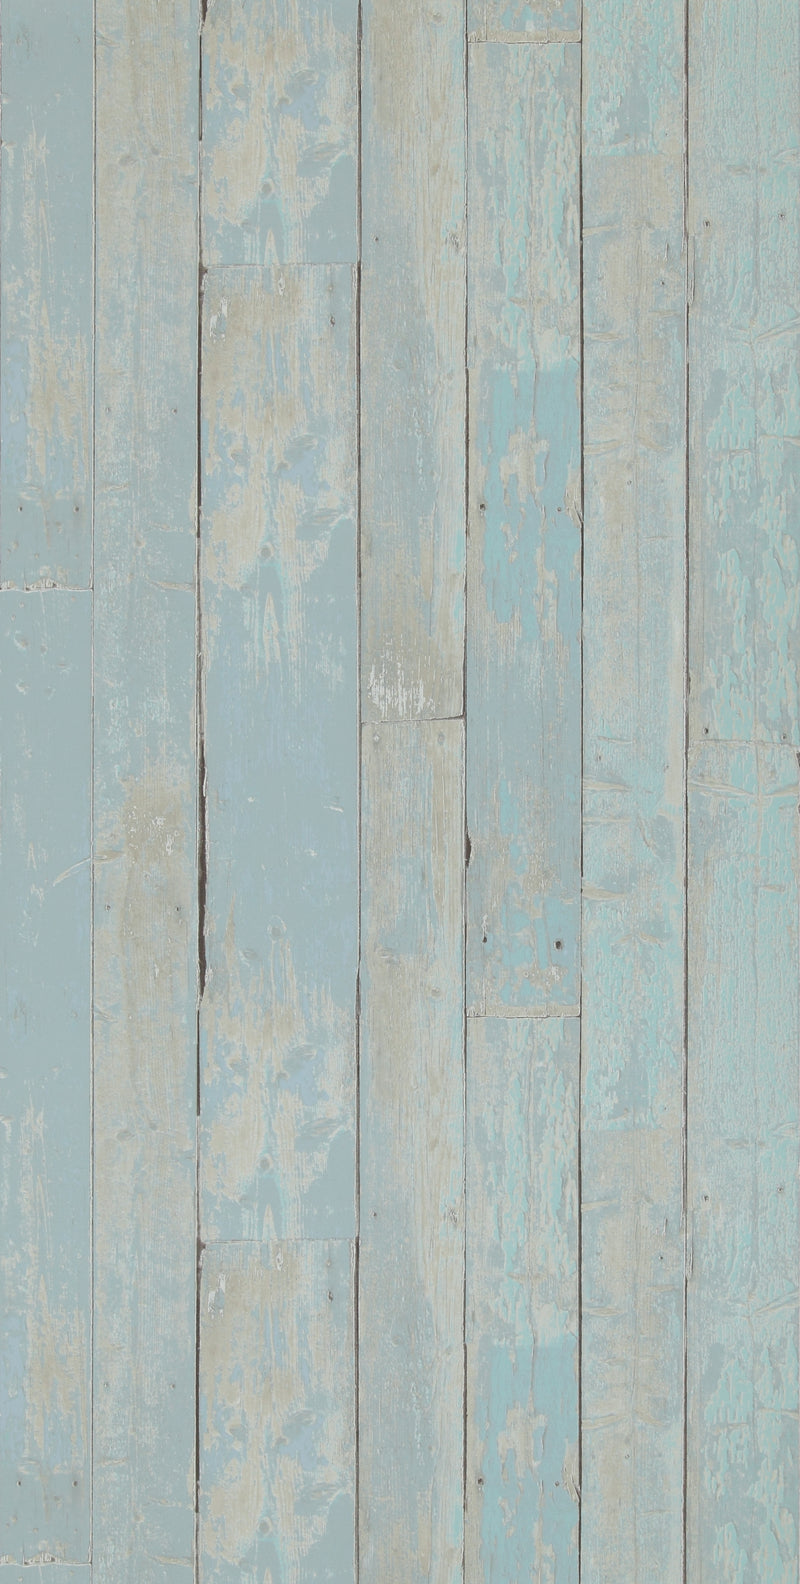 Pastel Blue Vintage Faux Wood Rustic Wallpaper R2595 . faux wood wallpaper. Rustic wallpaper.